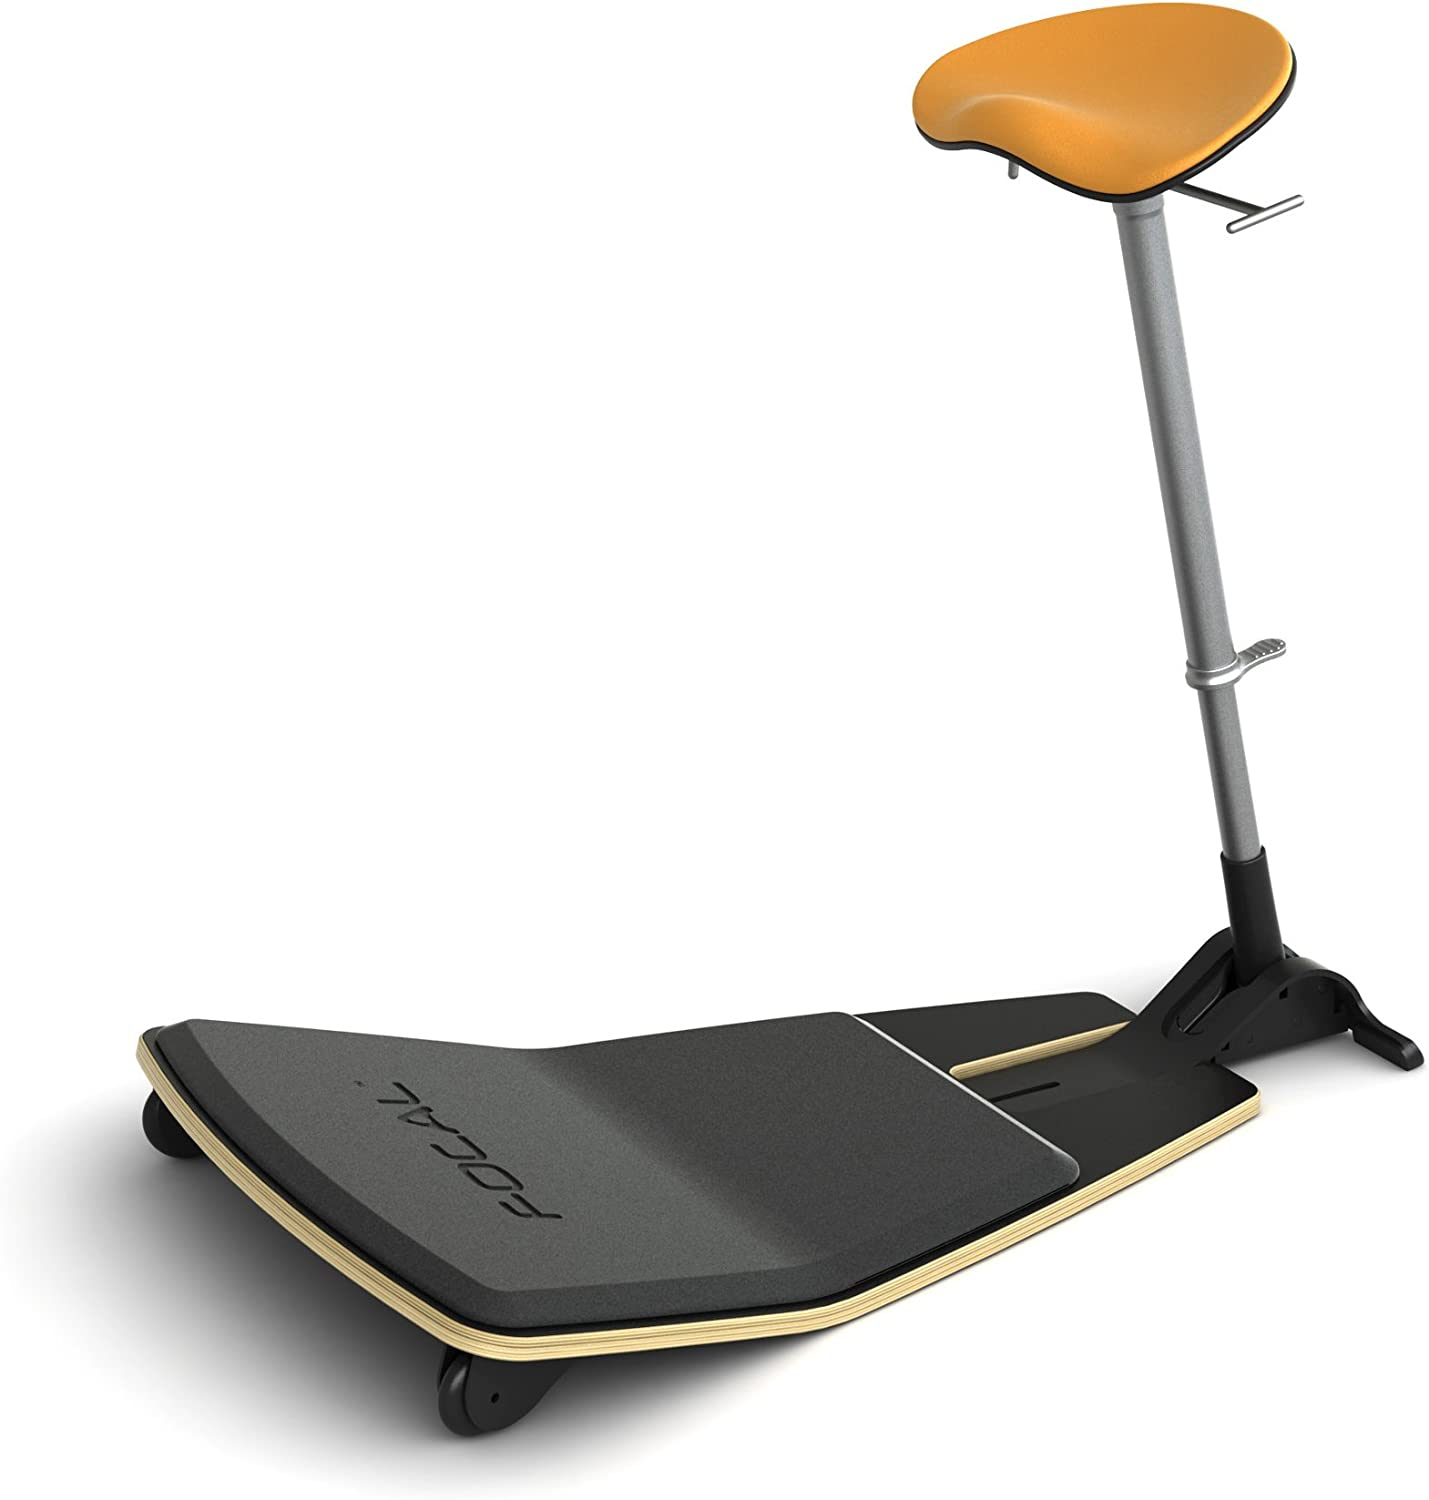 Active Collection Locus Mobile Stand-up Leaning Seat with Foot Rest Platform, Citrus